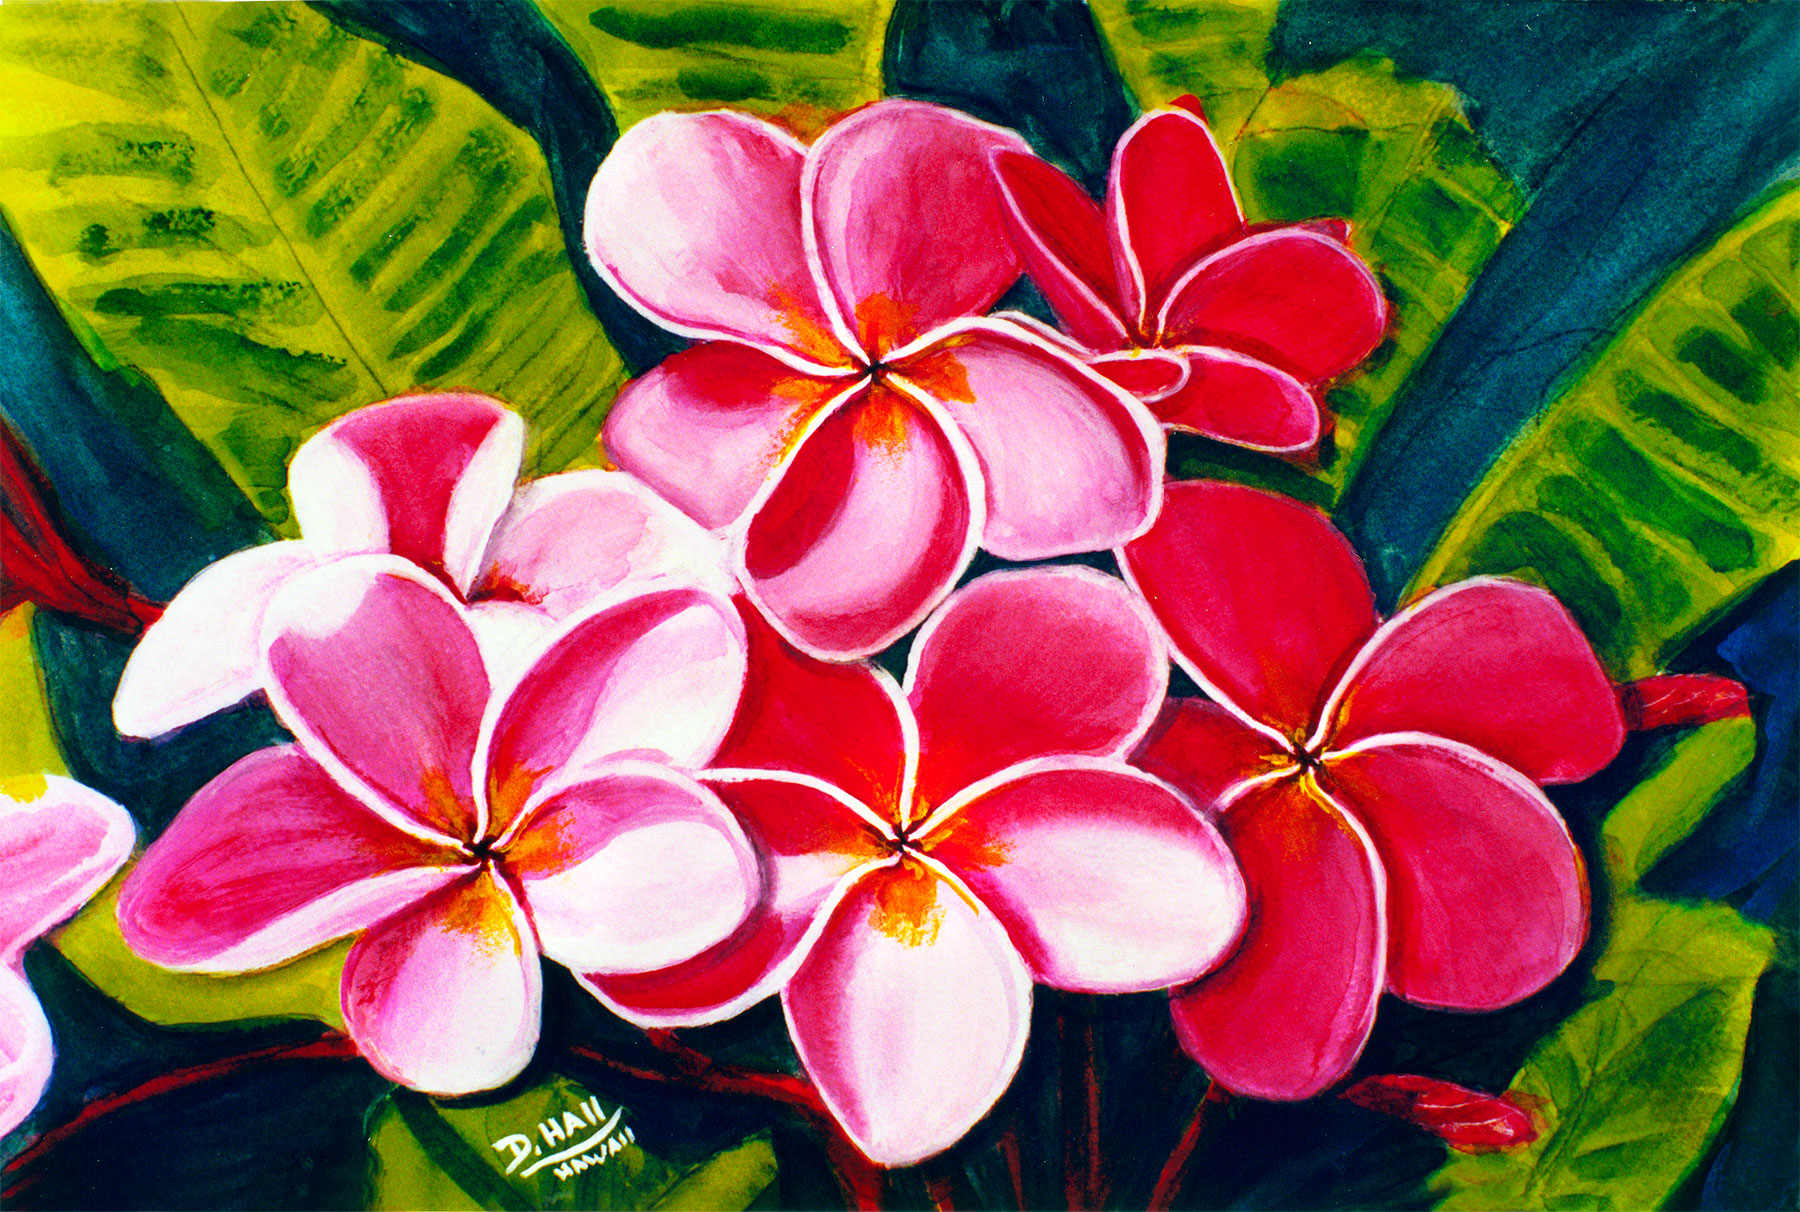 Hawaii plumeria flowers art paintings for sale hawaiian plumeria plumeria flower hawaii tropical flowes art prints painting by hawaii artist donald k izmirmasajfo